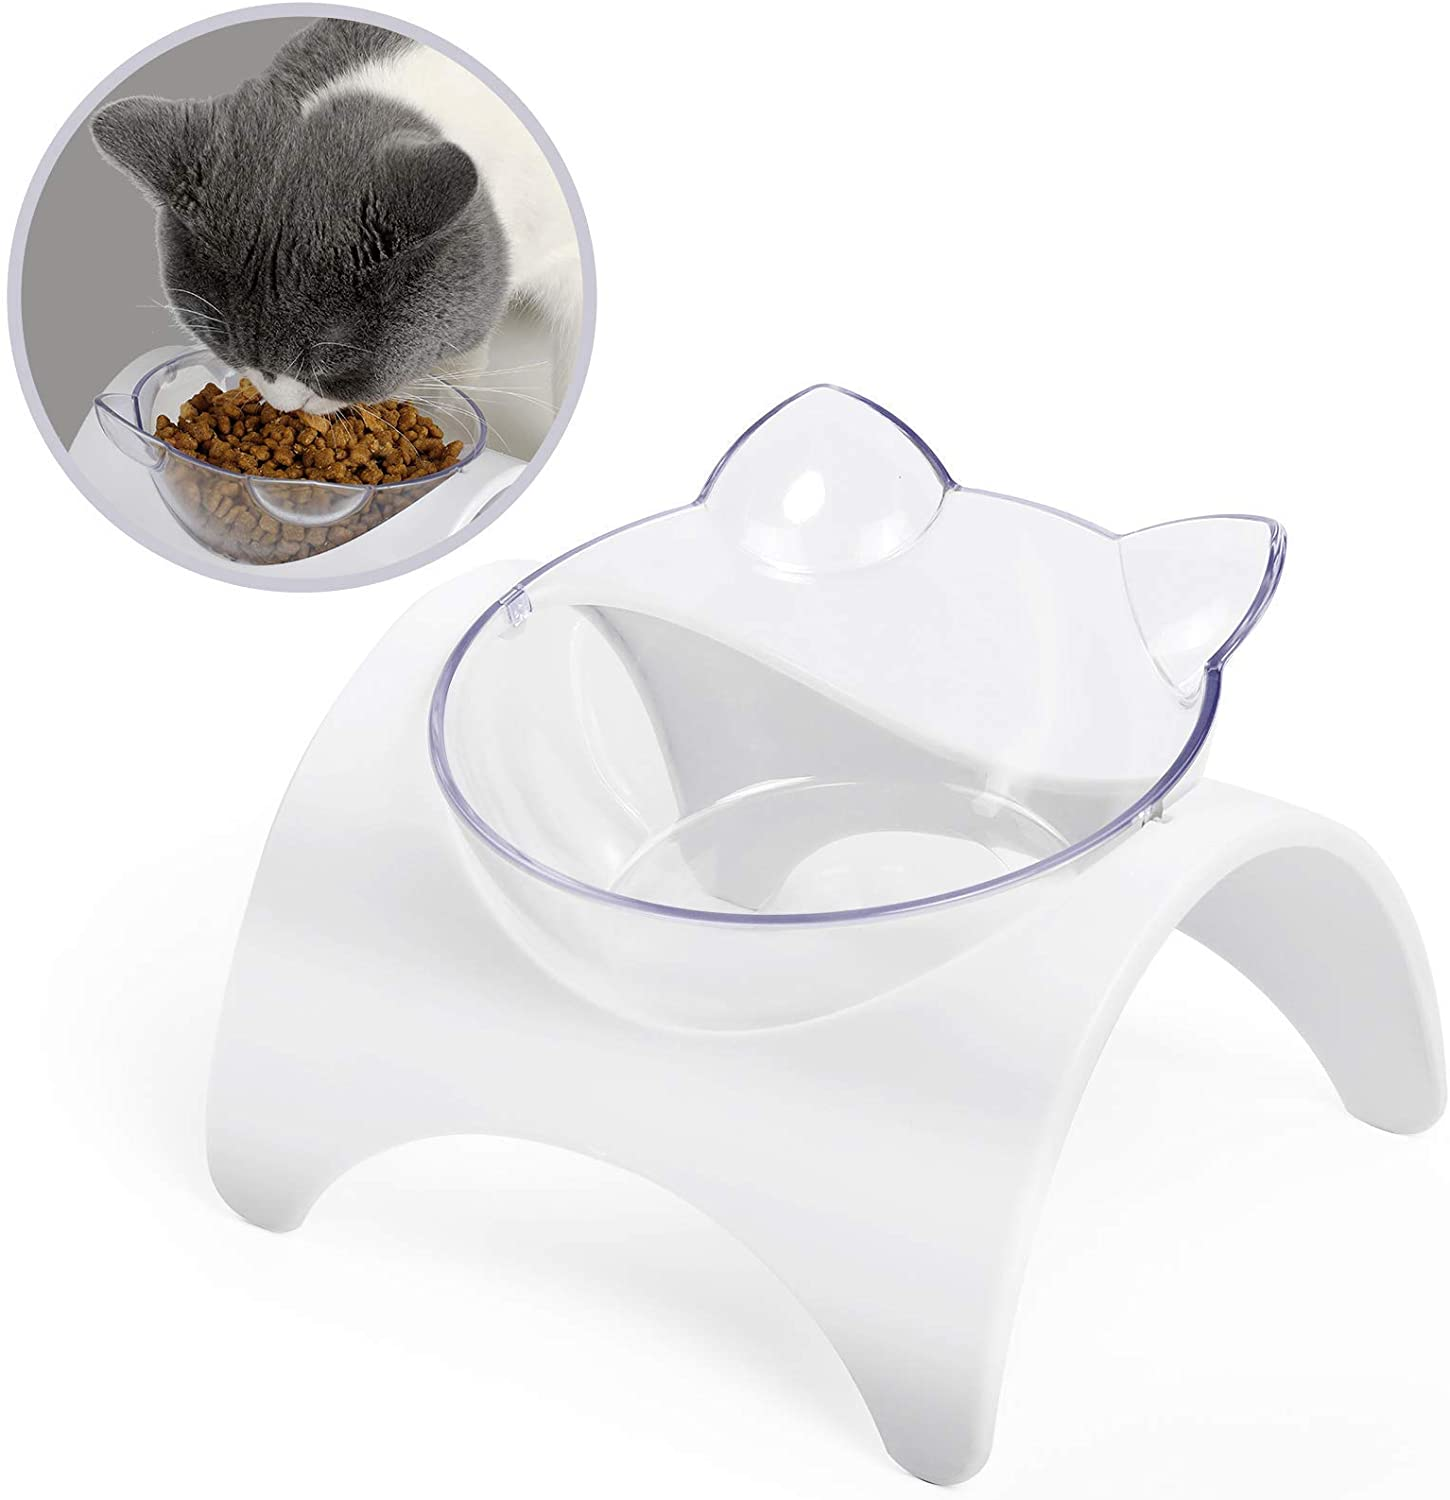 Cat Bowls, 15°Tilted Cat Food Bowls, Elevated Cat Bowl to Protect Cervical Spine from Vomiting, Suitable for Cats and Small Dogs